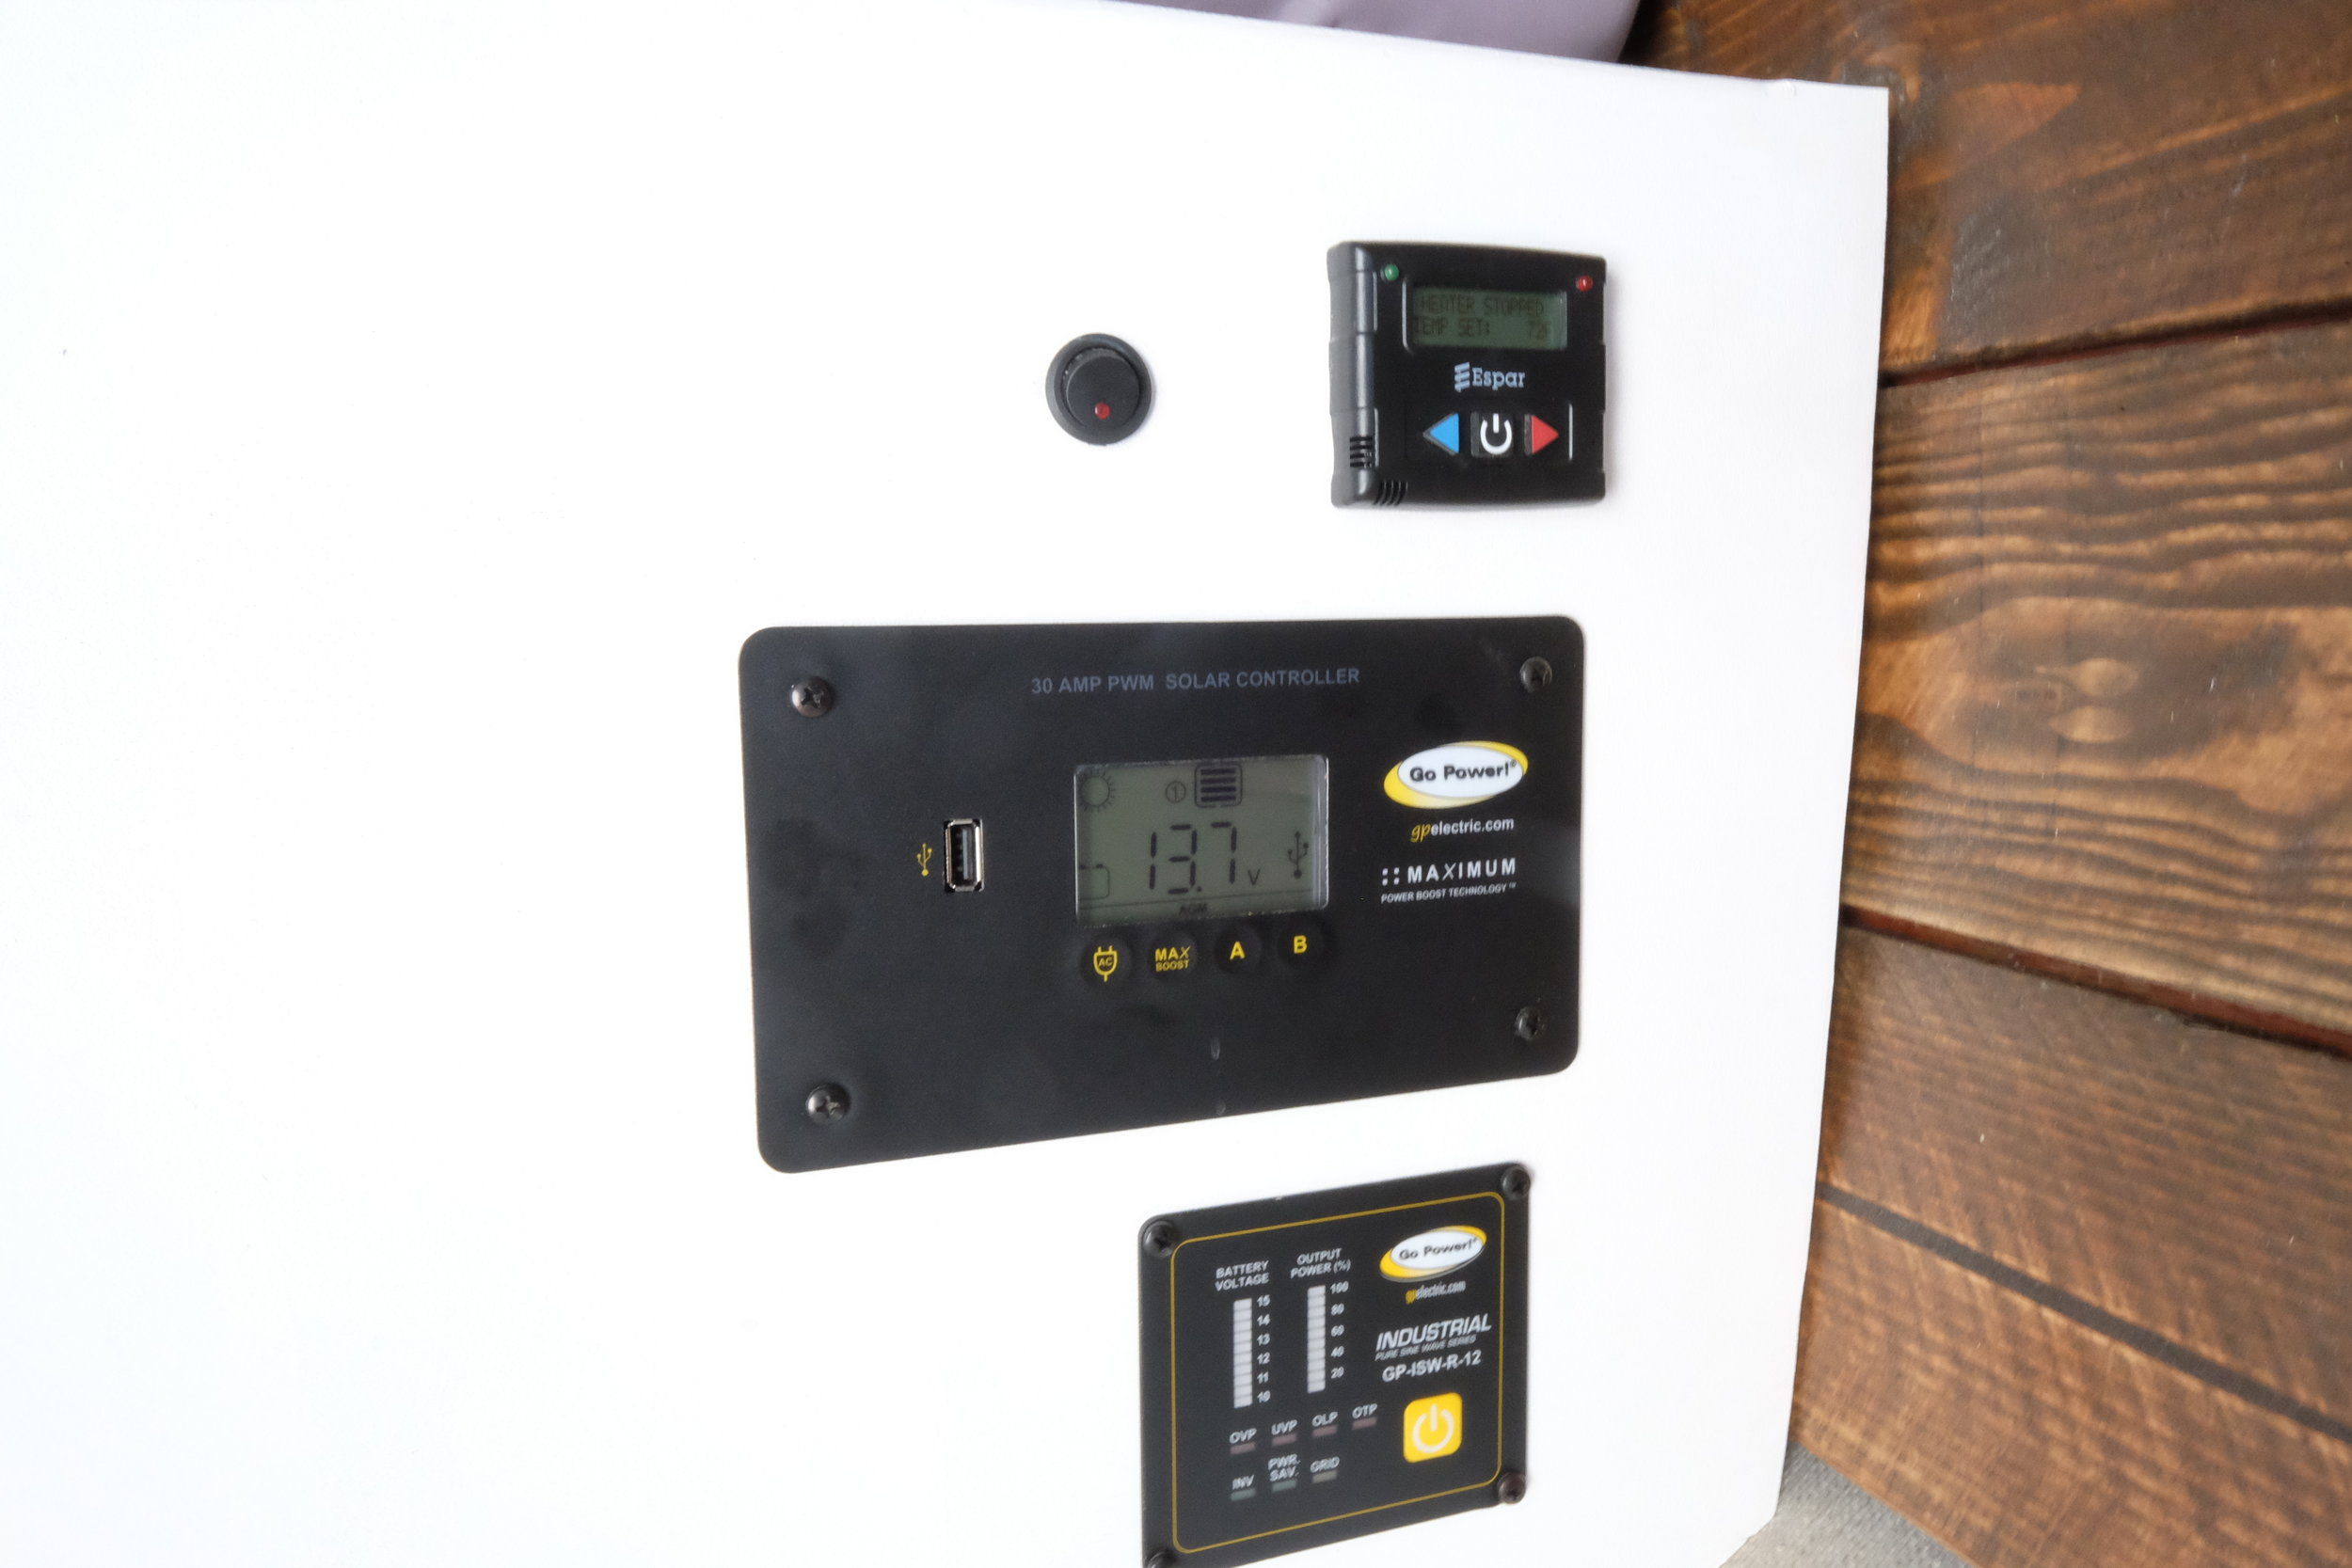 """A Go-Power solar set up, inverter, and controller take care of the electrical needs. Meanwhile, the fuel efficient Espar diesel fired heater runs warmly and quietly under the control of an easy to use """"set it and forget it"""" thermostat."""